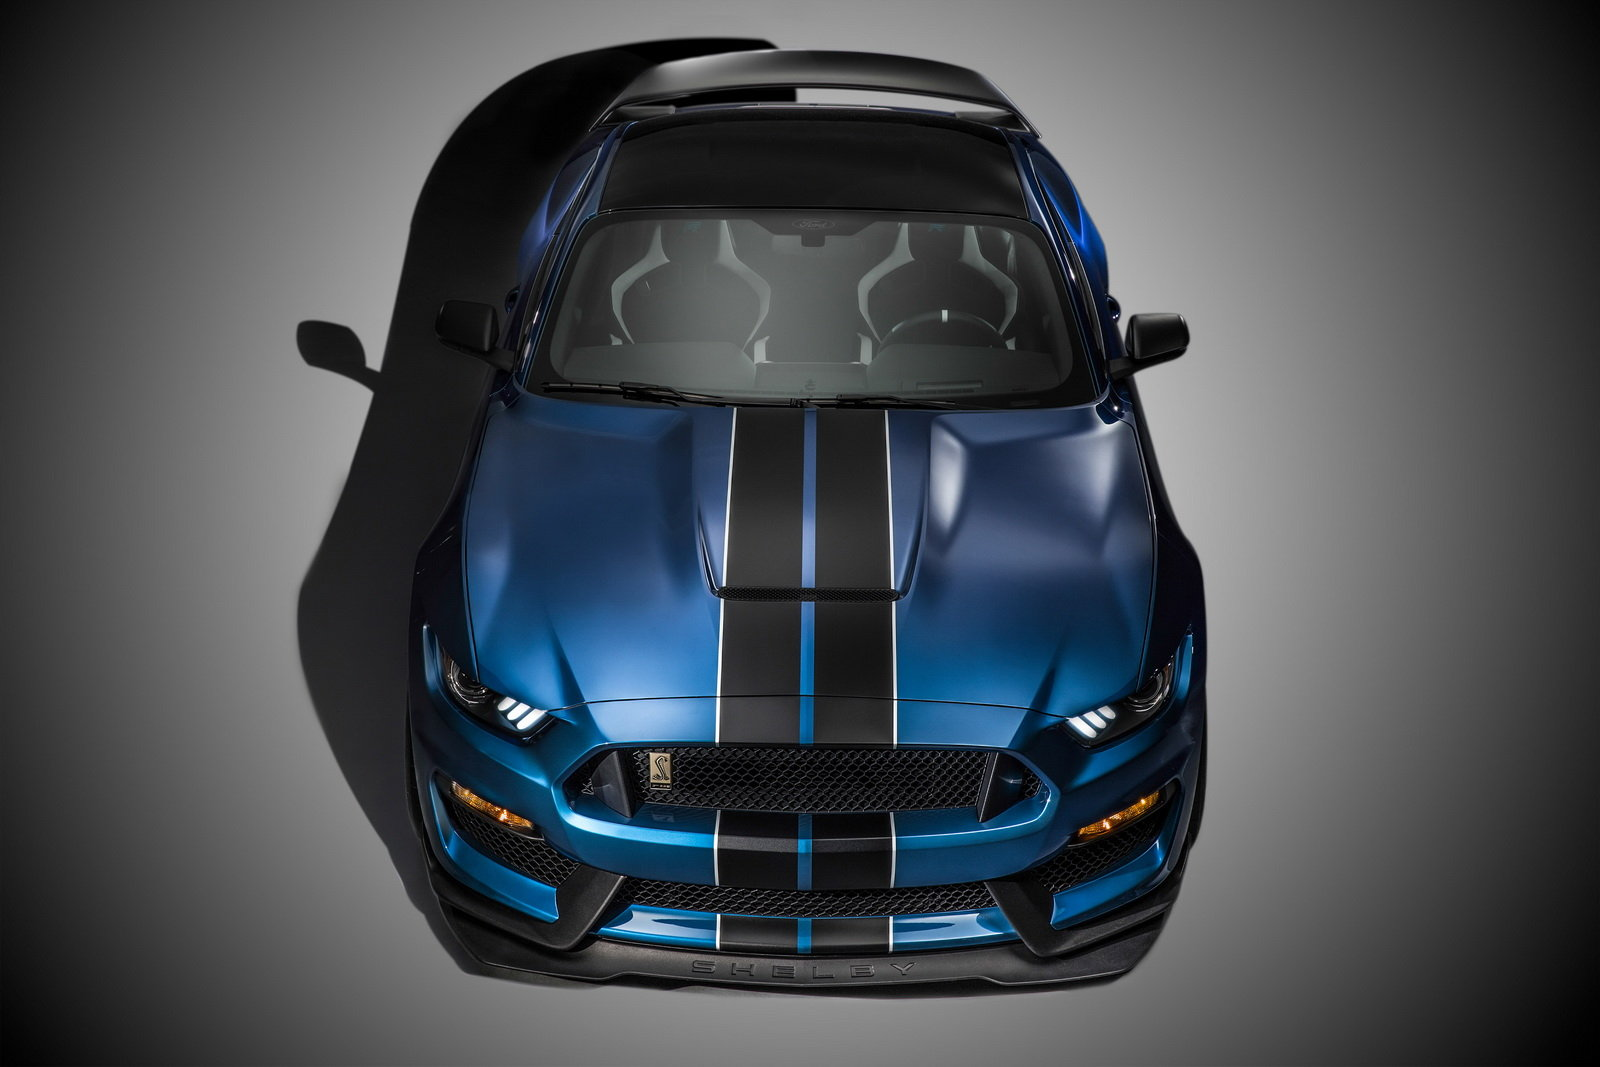 2016 Ford Mustang Shelby Gt350r Top Photo (Photo 5 of 47)